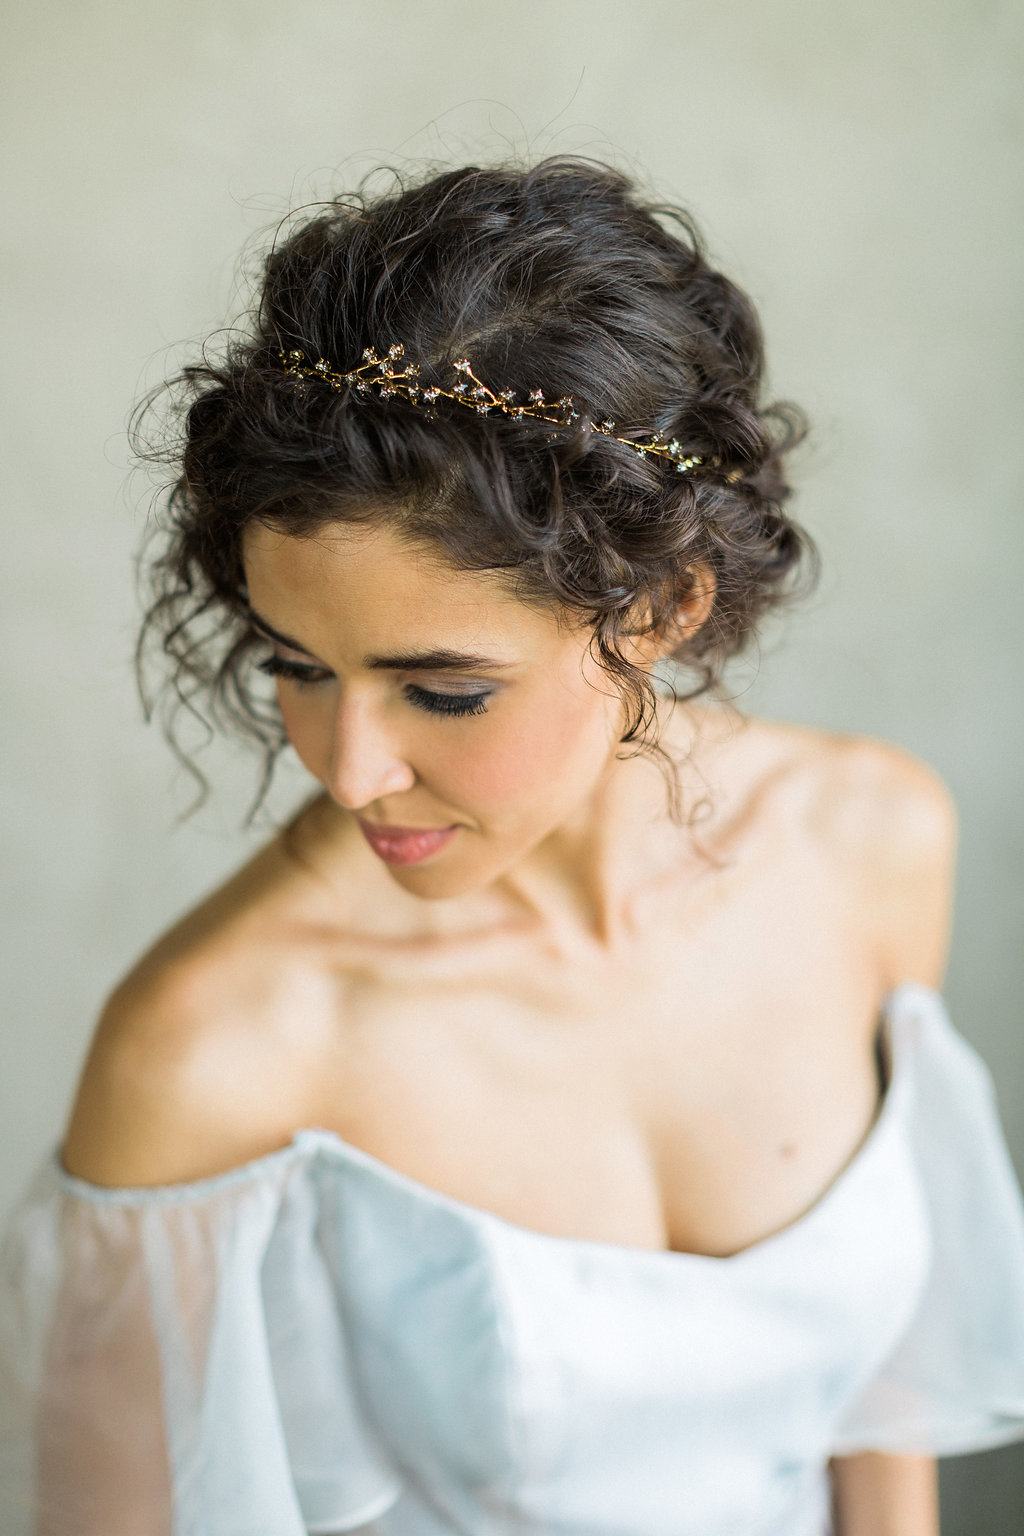 delicate bridal hair accessories - https://ruffledblog.com/cloudy-day-wedding-inspiration-with-a-hand-painted-bridal-gown